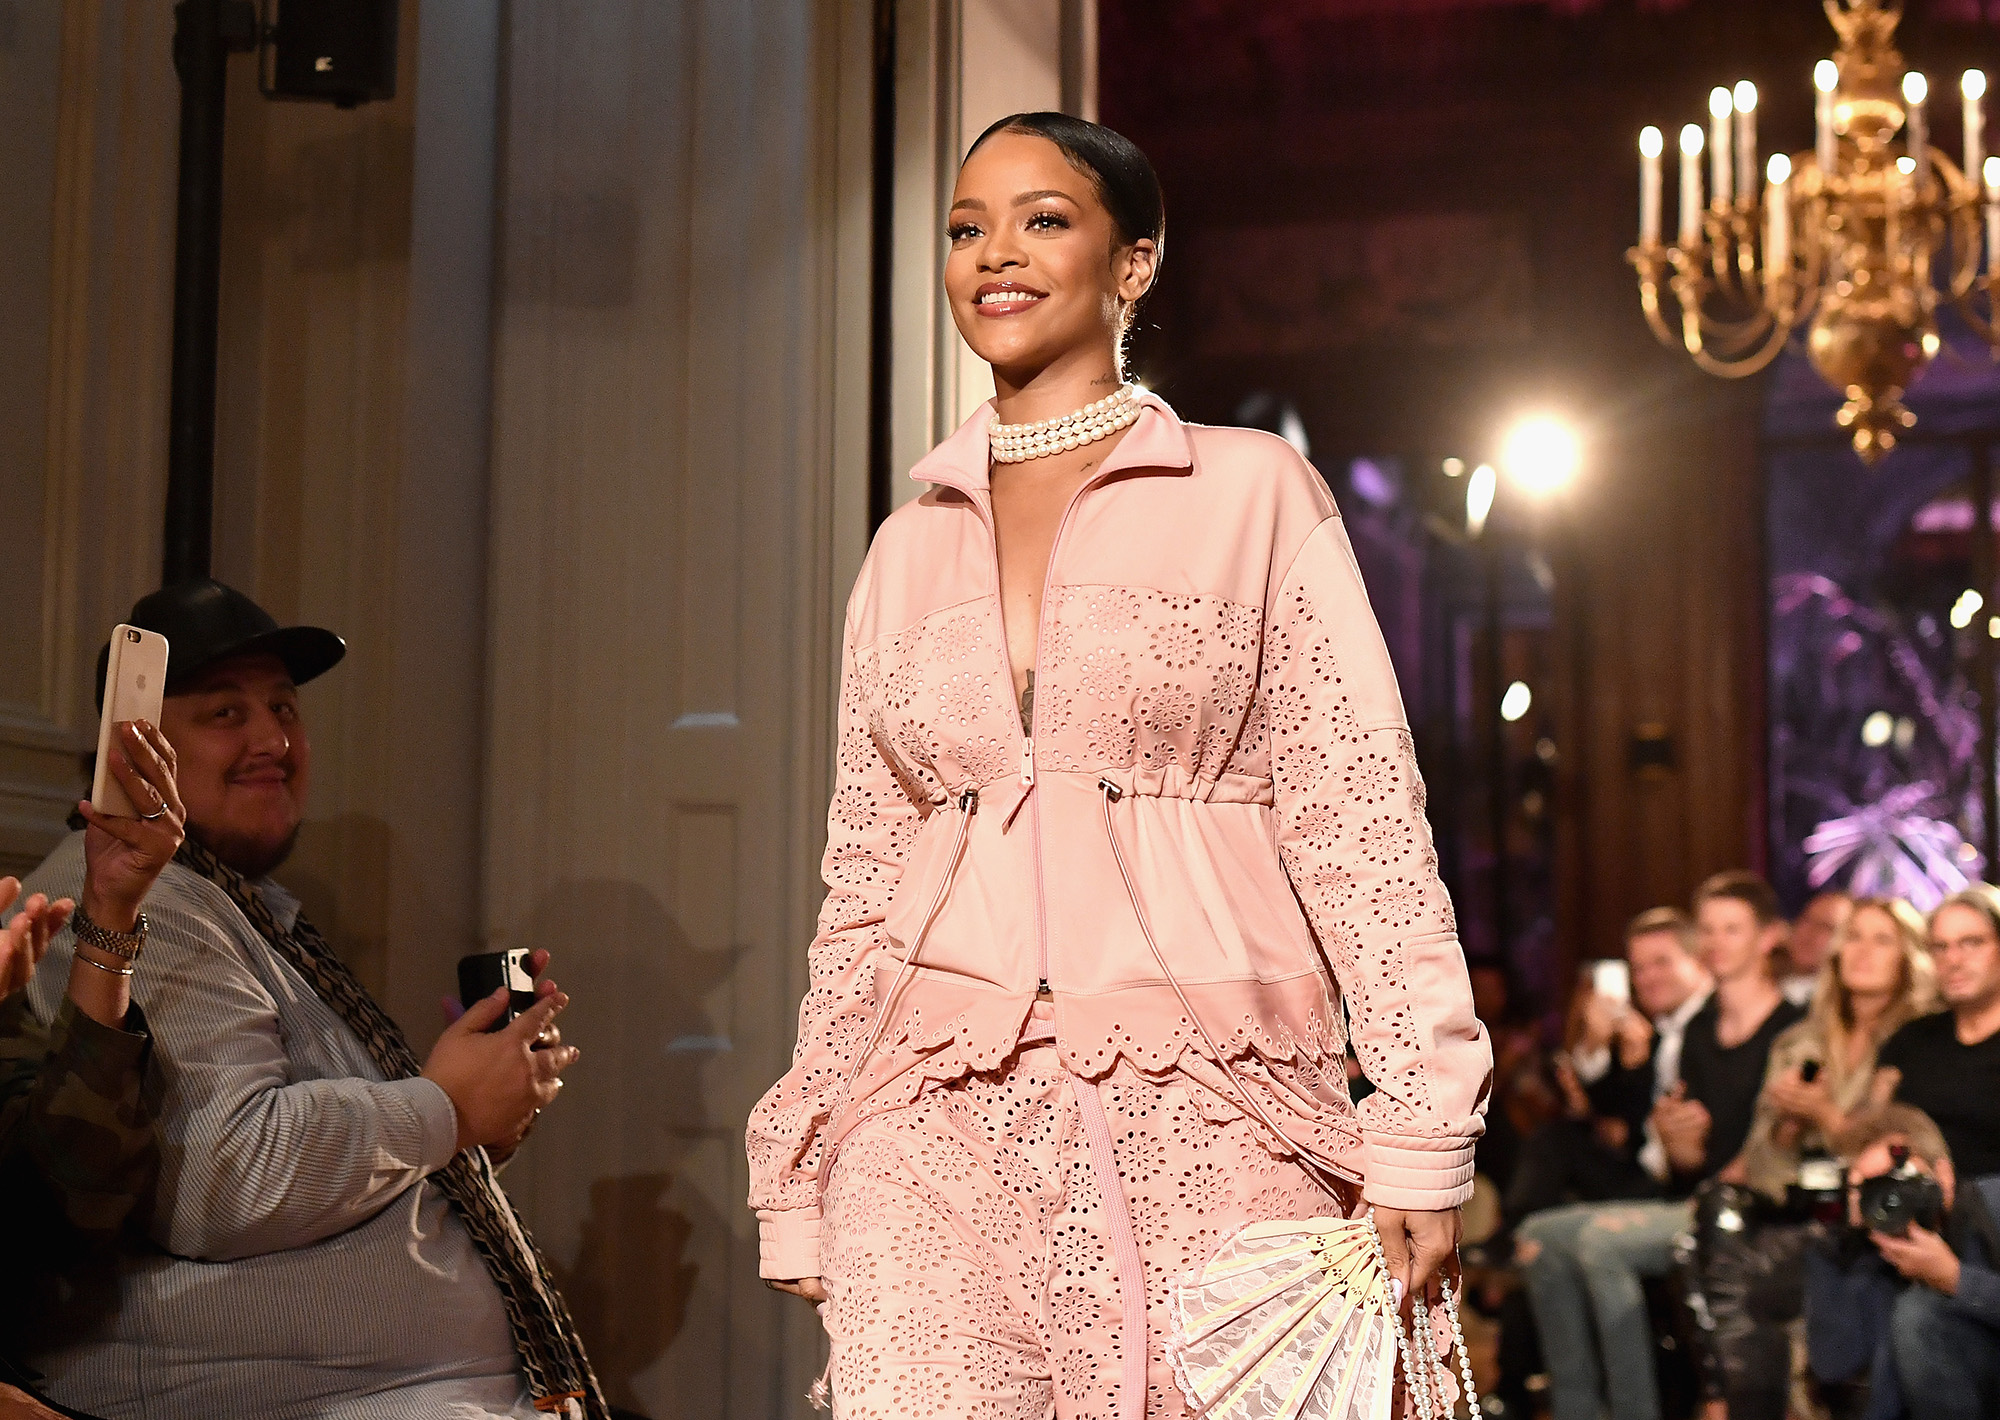 PARIS, FRANCE - SEPTEMBER 28:  Rihanna walks the runway during FENTY x PUMA by Rihanna at Hotel Salomon de Rothschild on September 28, 2016 in Paris, France.  (Photo by Jacopo Raule/Getty Images for Fenty x Puma)